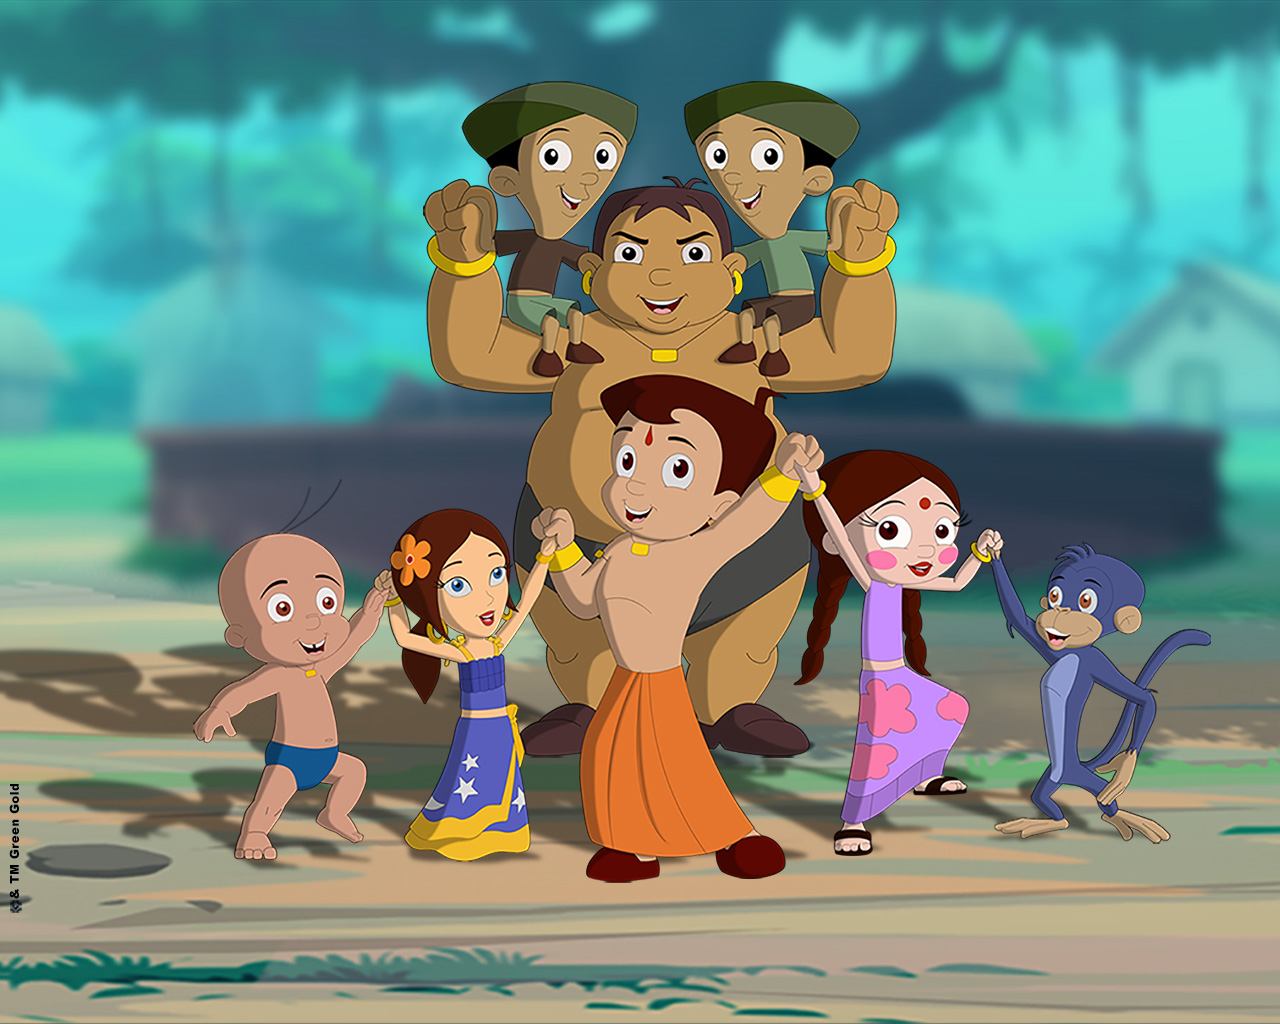 Chhota Bheem And Friends Hd Wallpapers Free Download Wallpaper